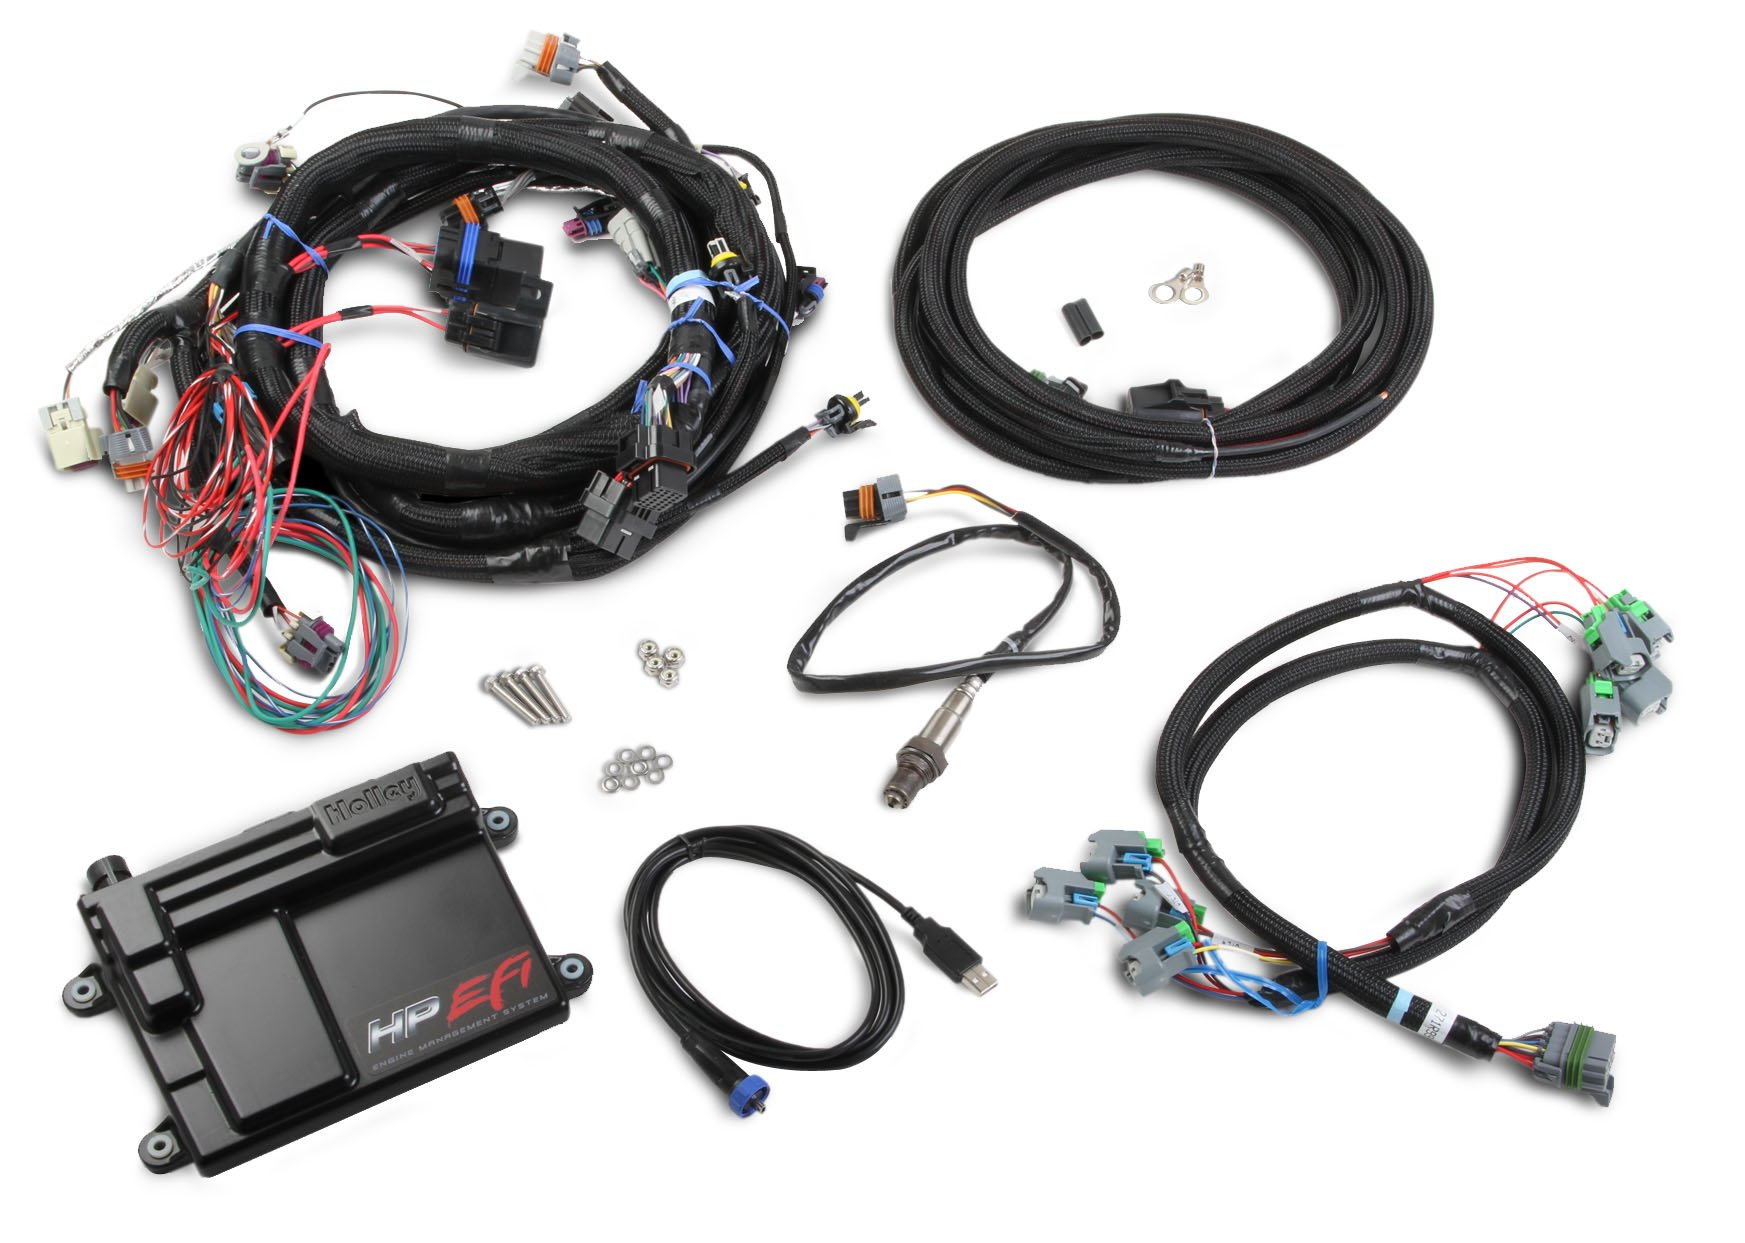 550 603 holley efi 550 603 hp efi ecu & harness kits subaru ecu and wiring harness at honlapkeszites.co